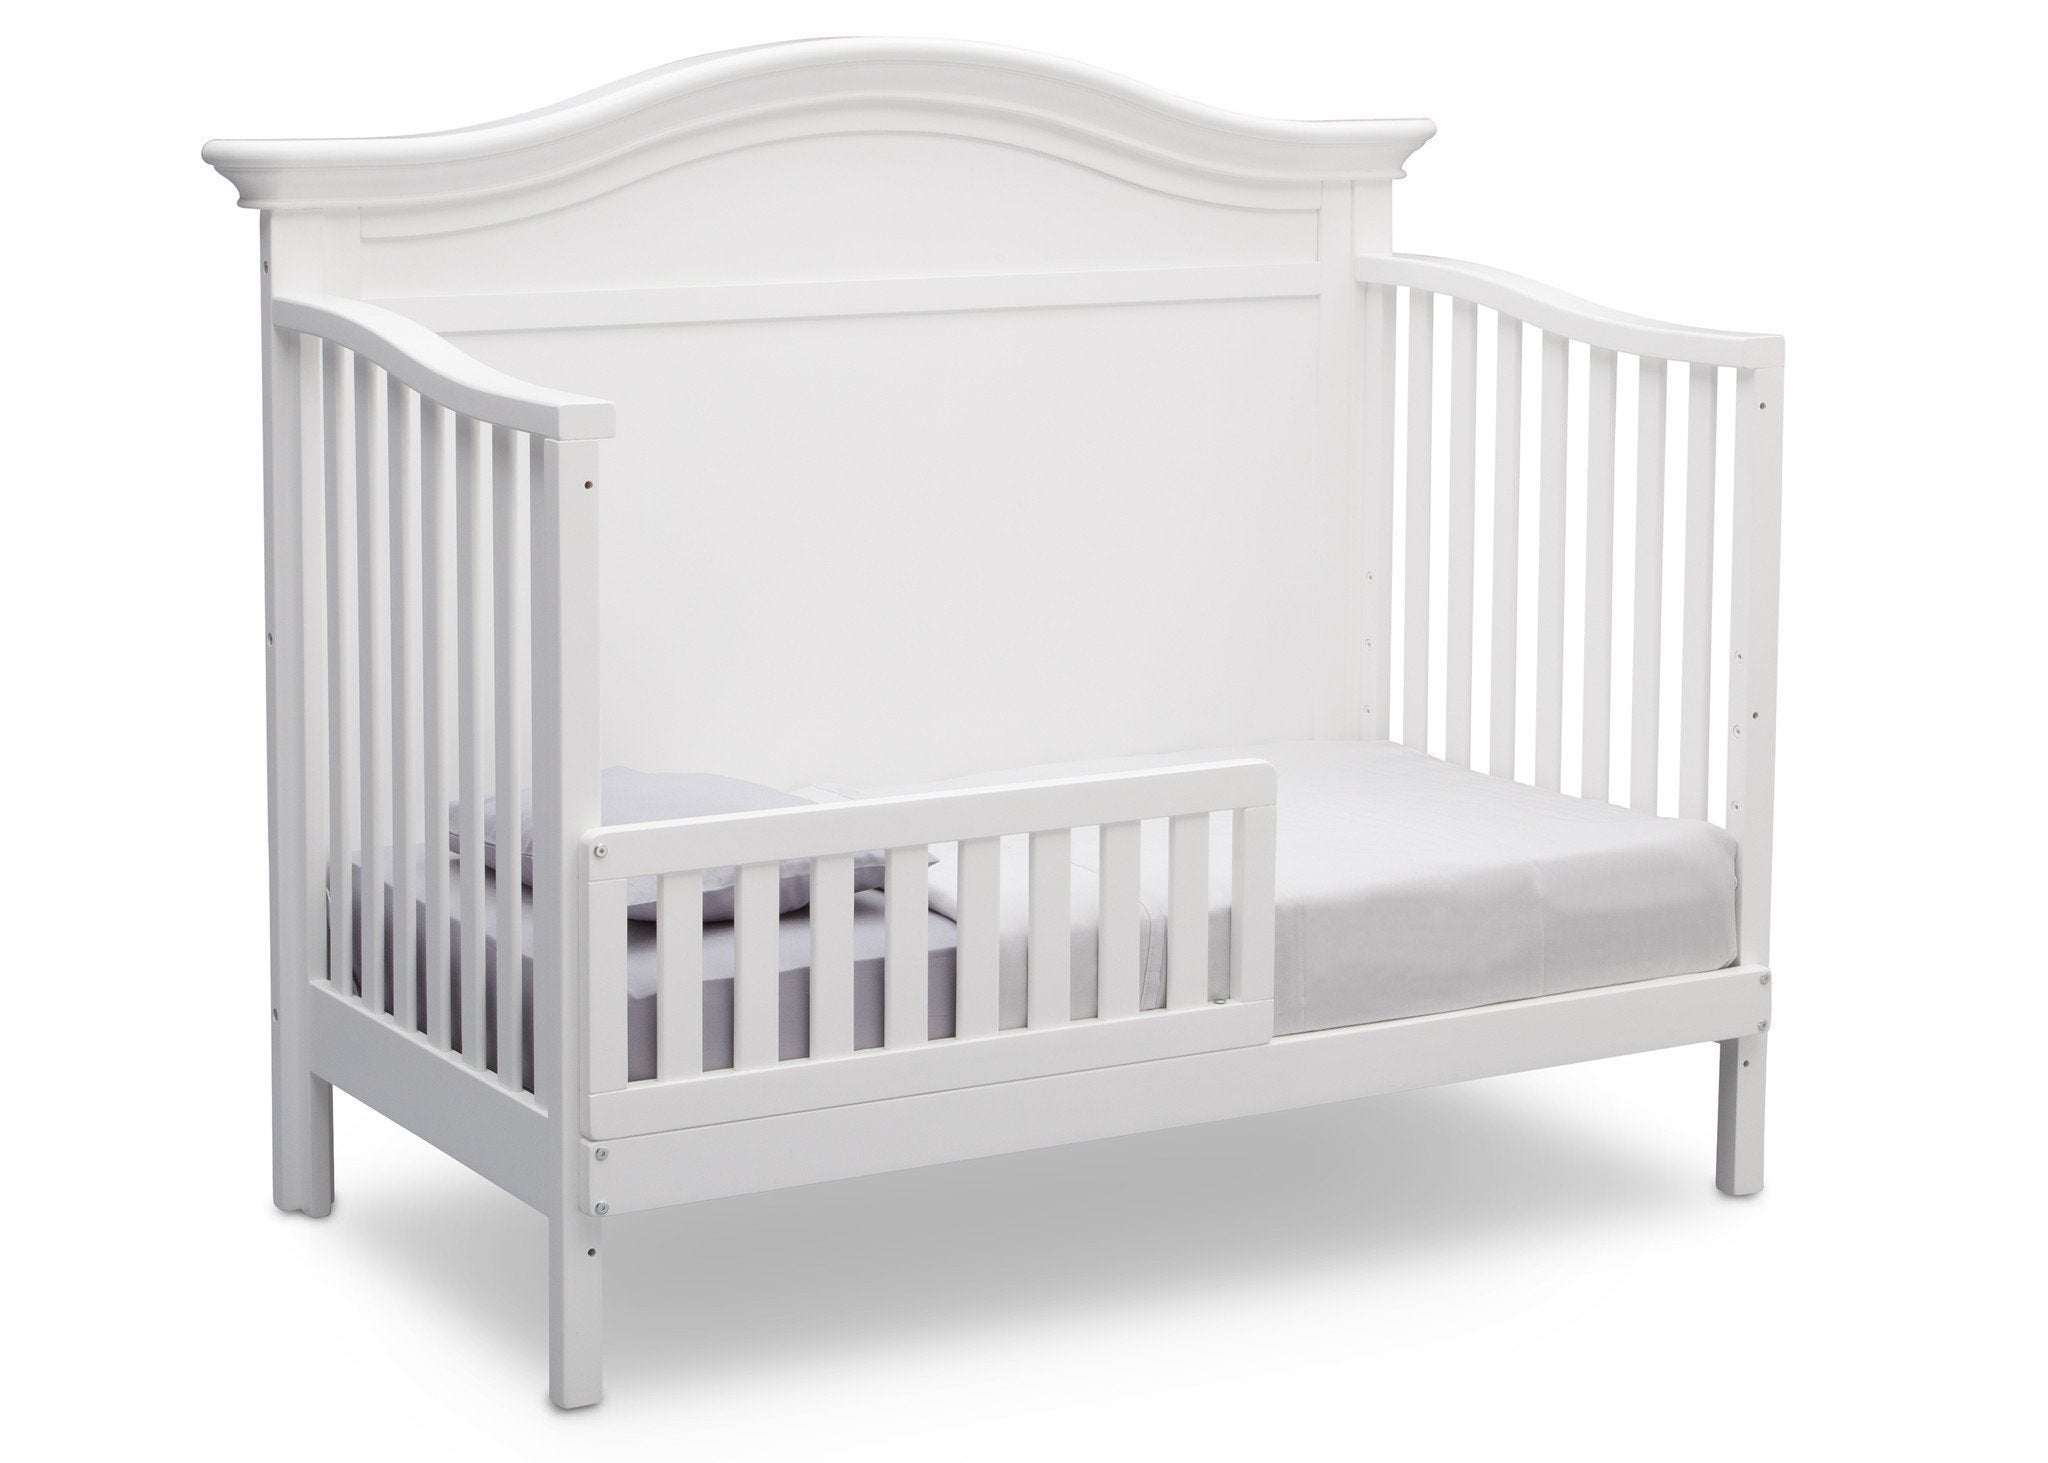 Serta Bianca White (130) Bethpage 4-in-1 Crib, Side View with Toddler Bed Conversion b5b